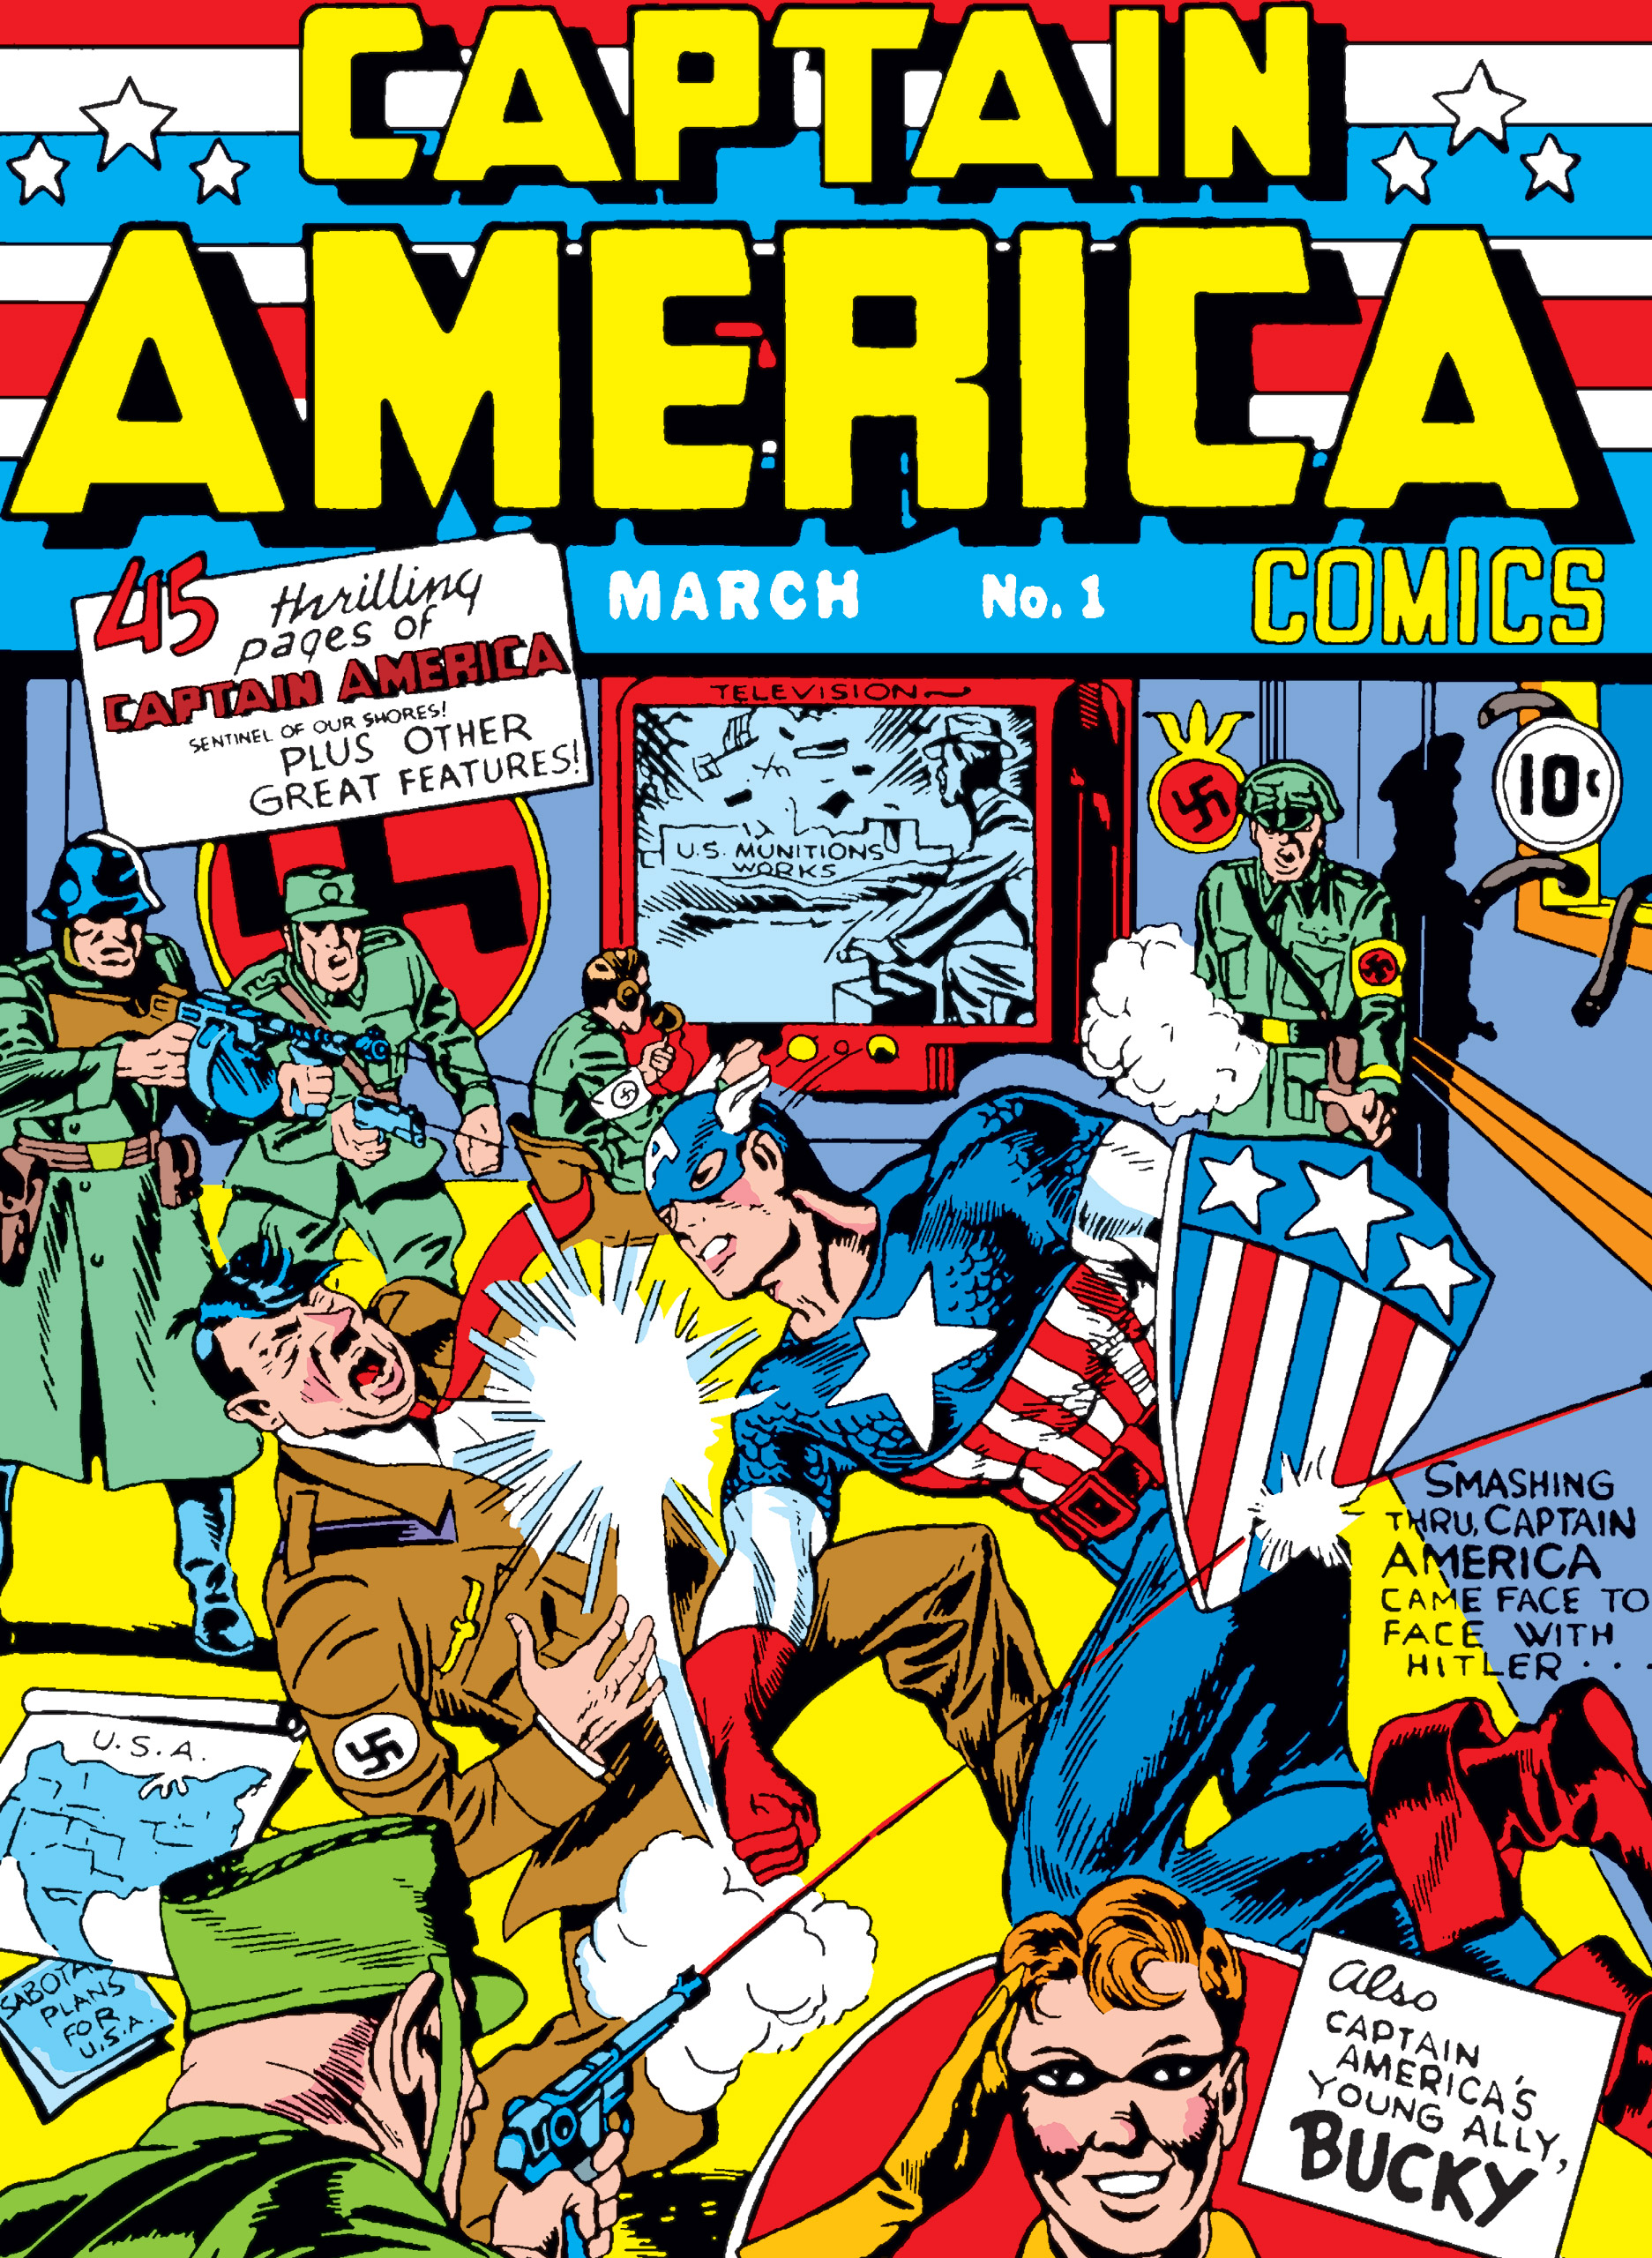 The first cover of Marvel comic Captain America.